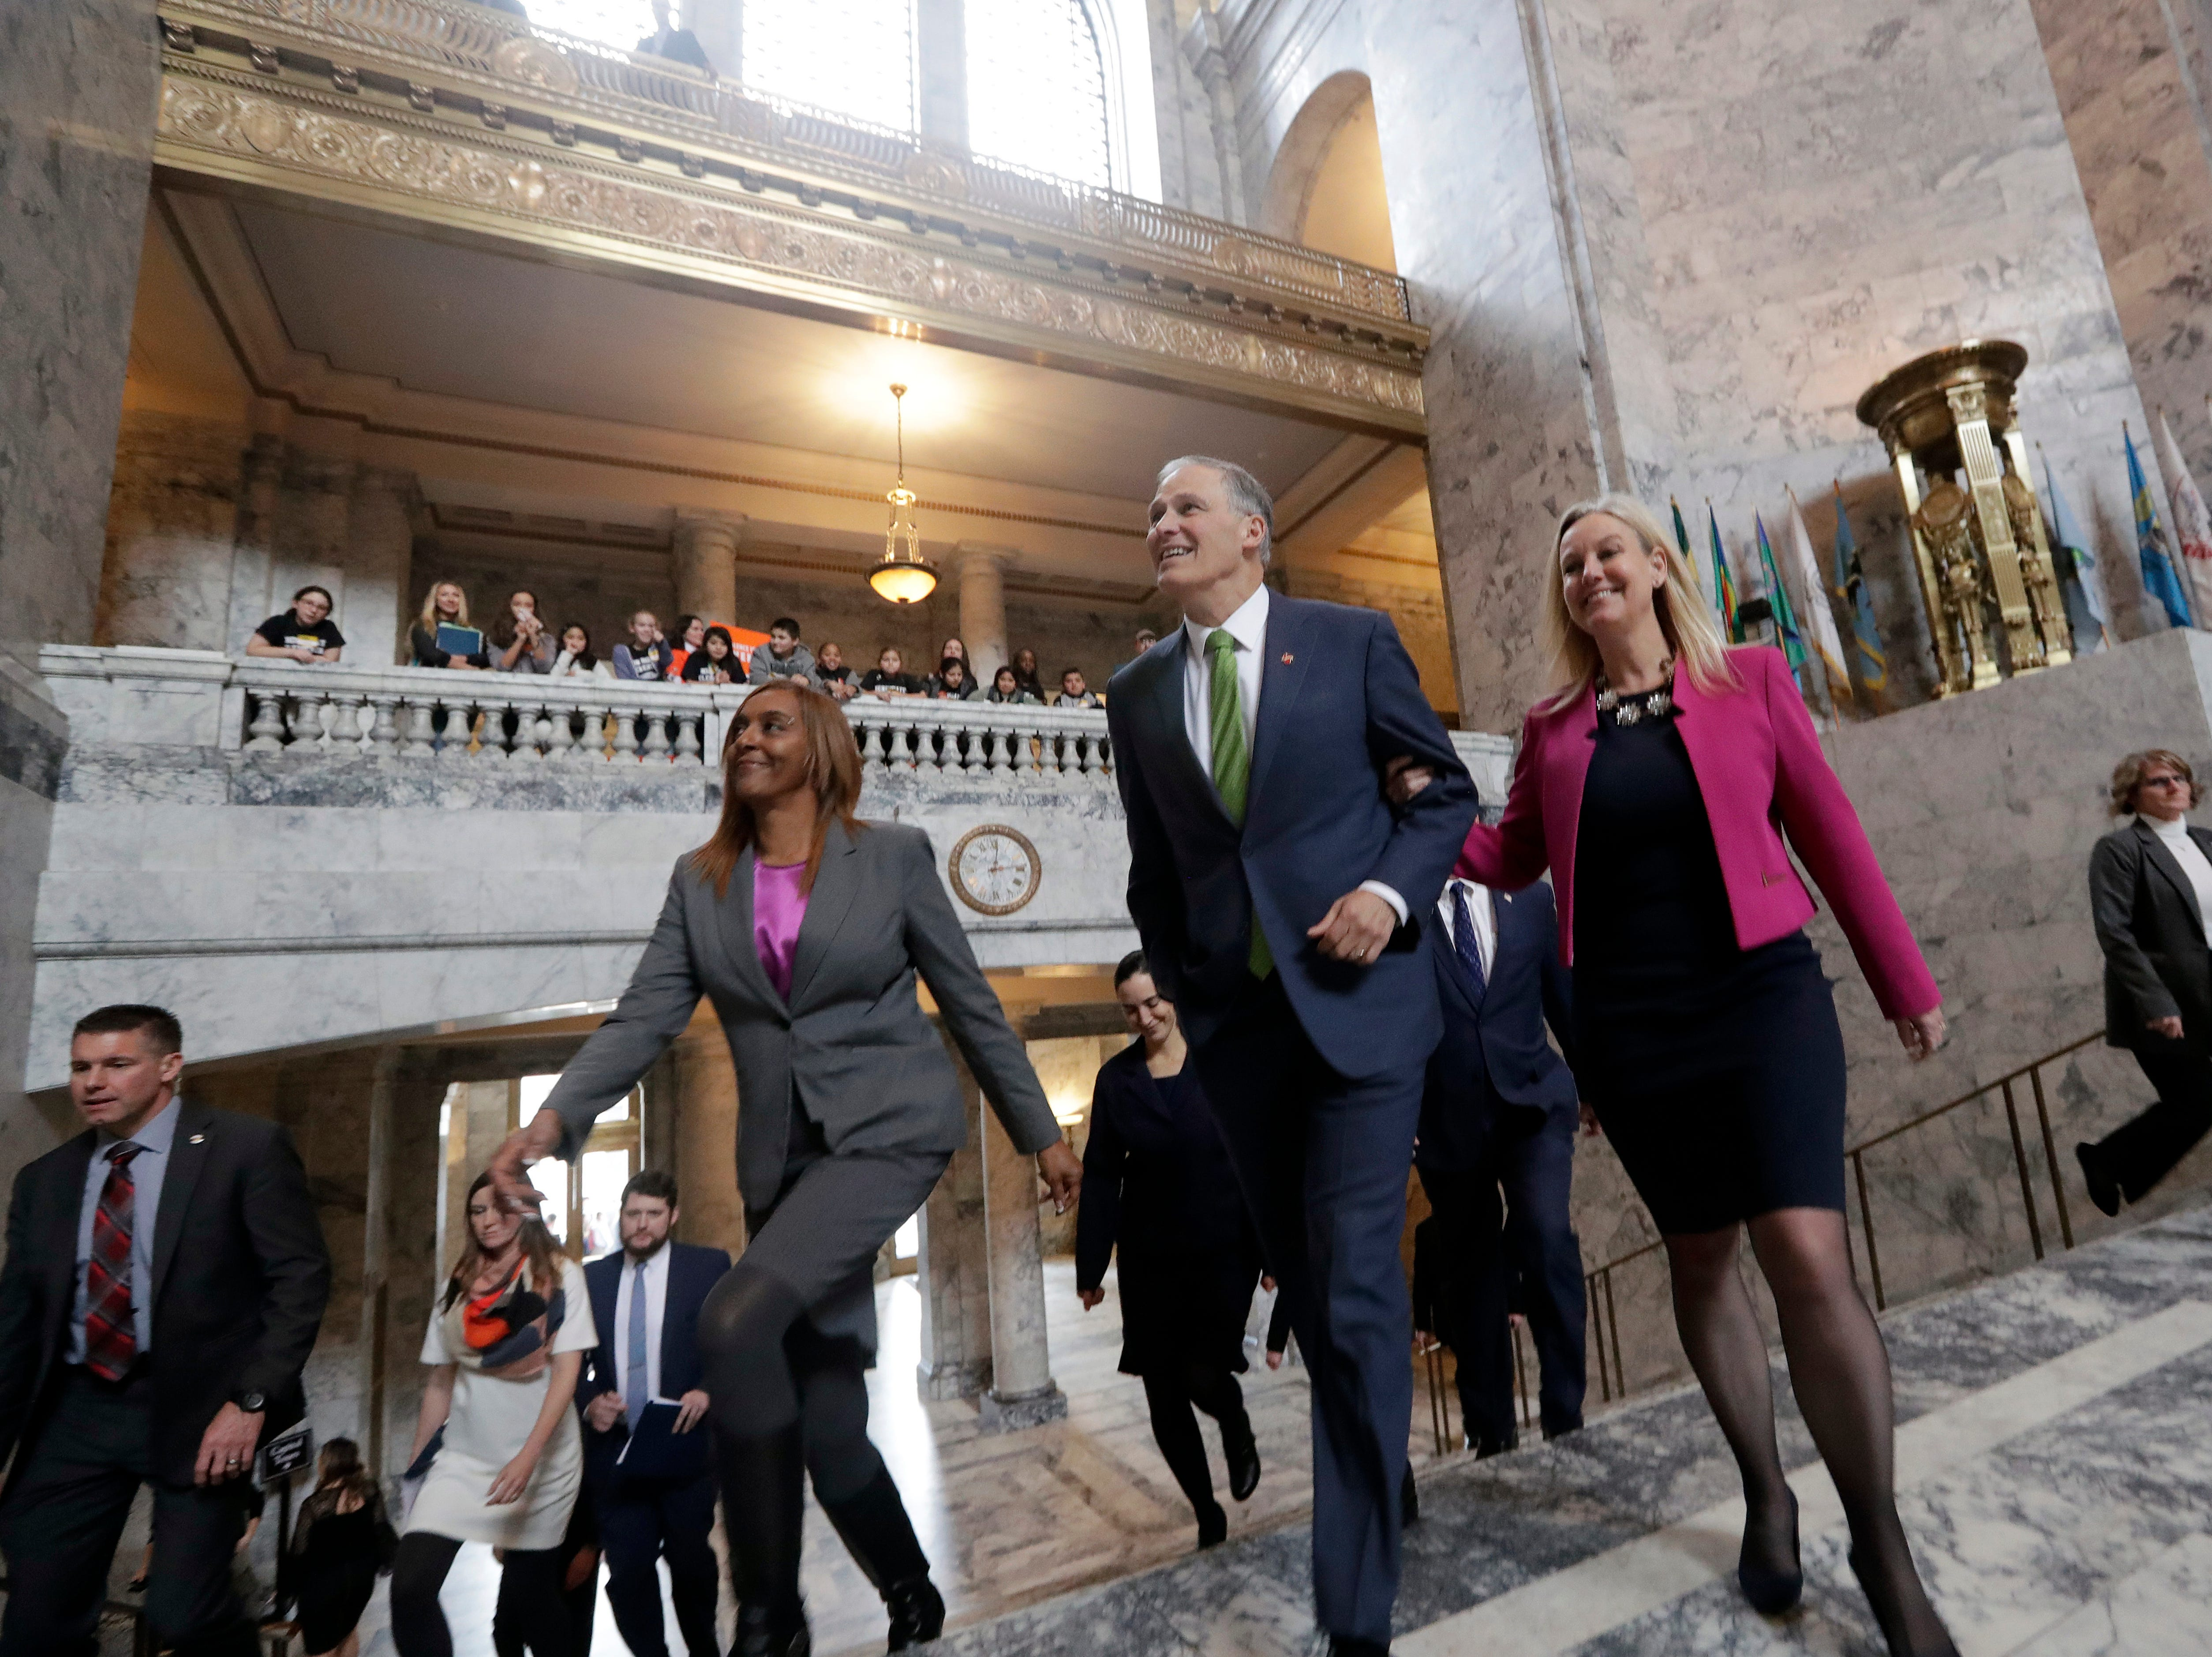 Gov. Jay Inslee is escorted through the Capital rotunda and to the House chambers by Rep. Mary Dye, right, R-Pomeroy, and Rep. Melanie Morgan, D-Lakewood, before his State of the State address Tuesday in Olympia.